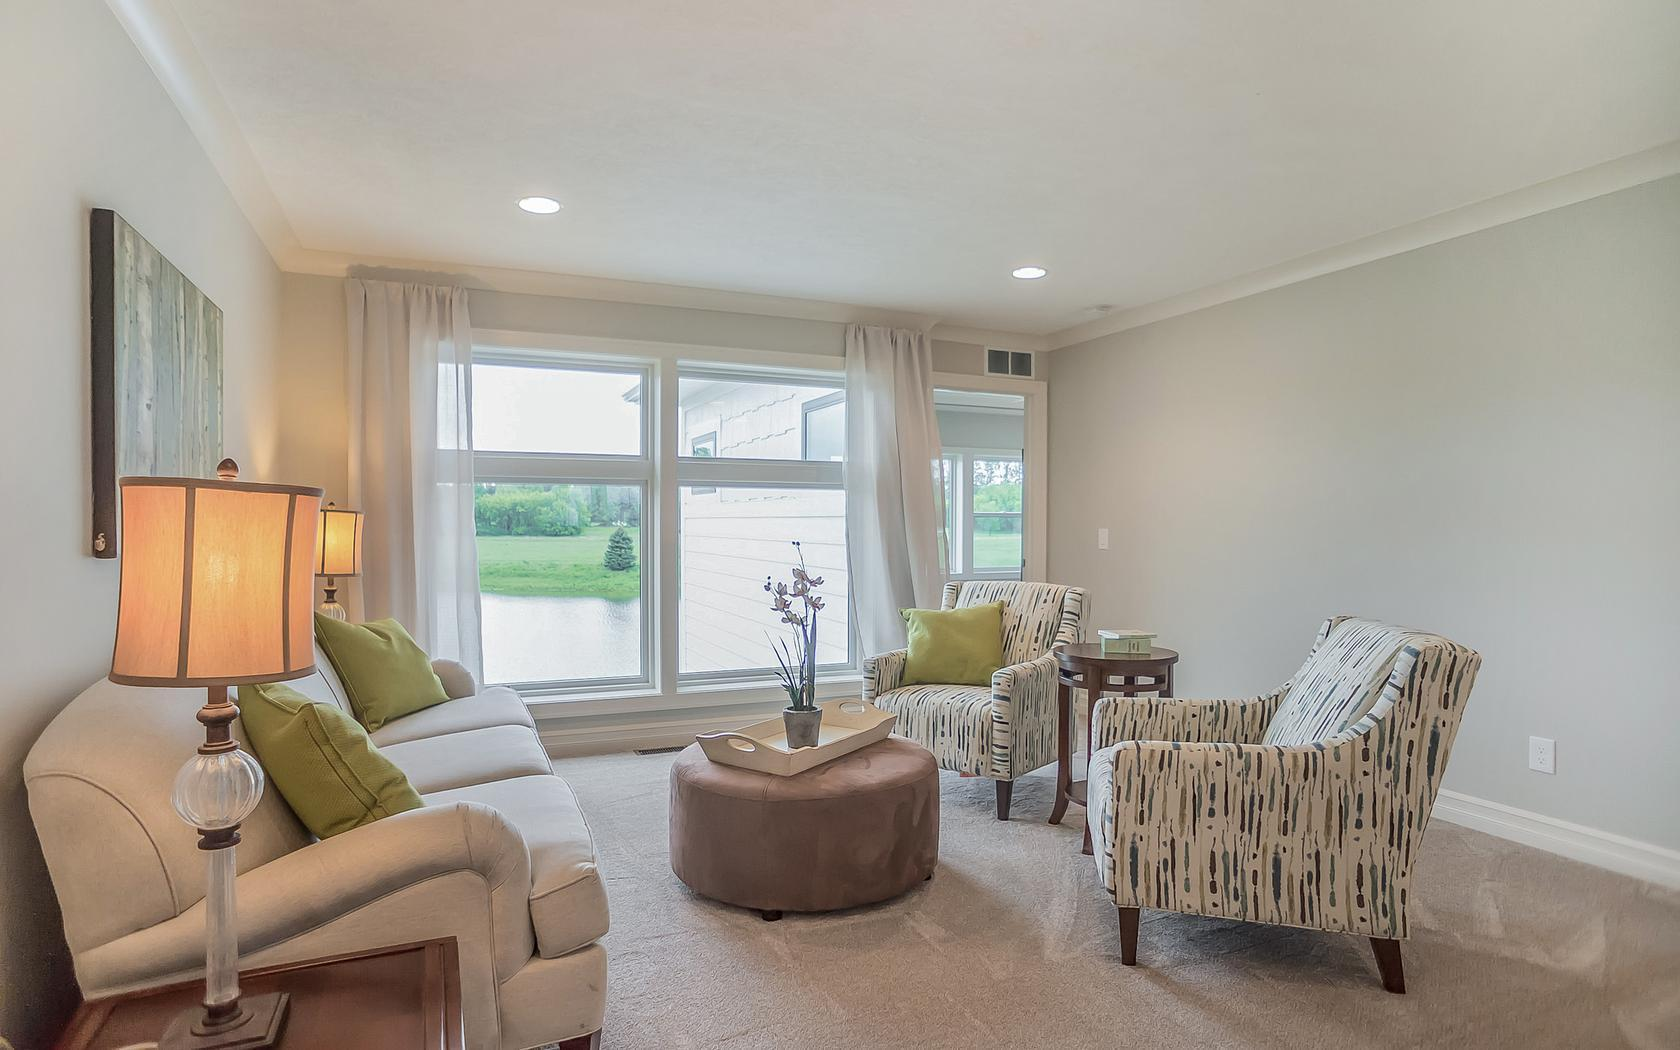 Living Area featured in the Mayberry By Mayberry Homes in Lansing, MI